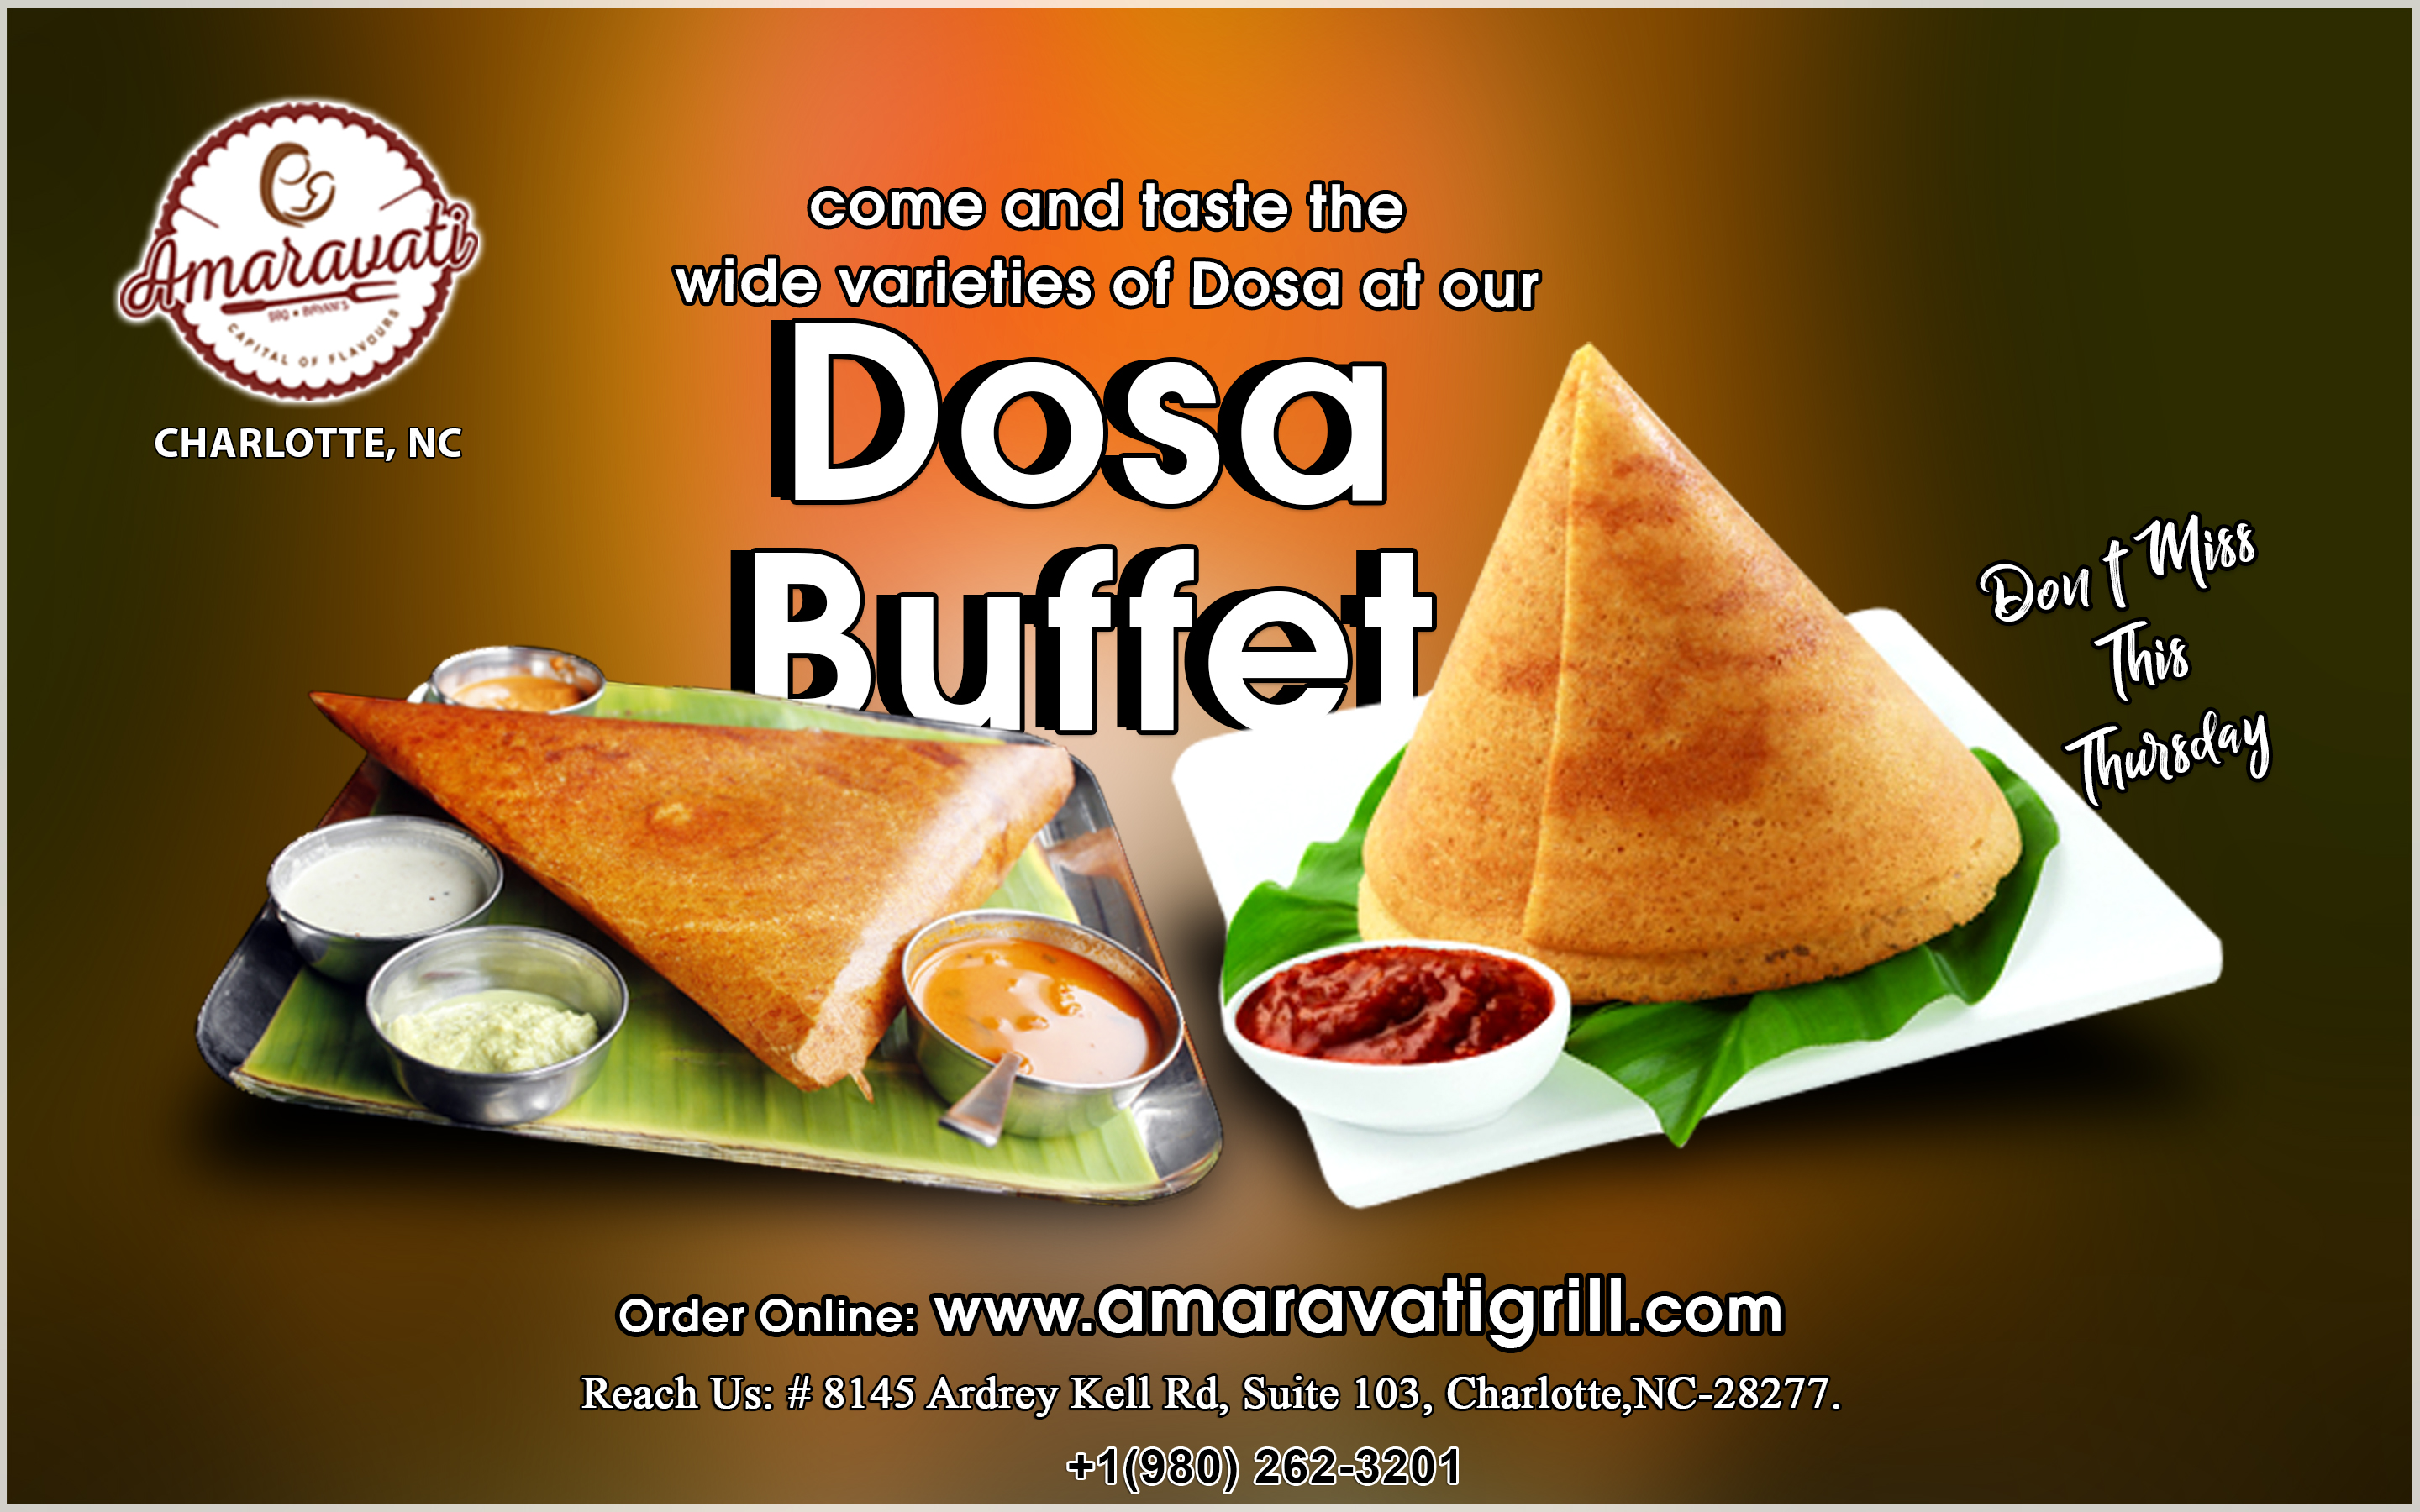 Dosa Night